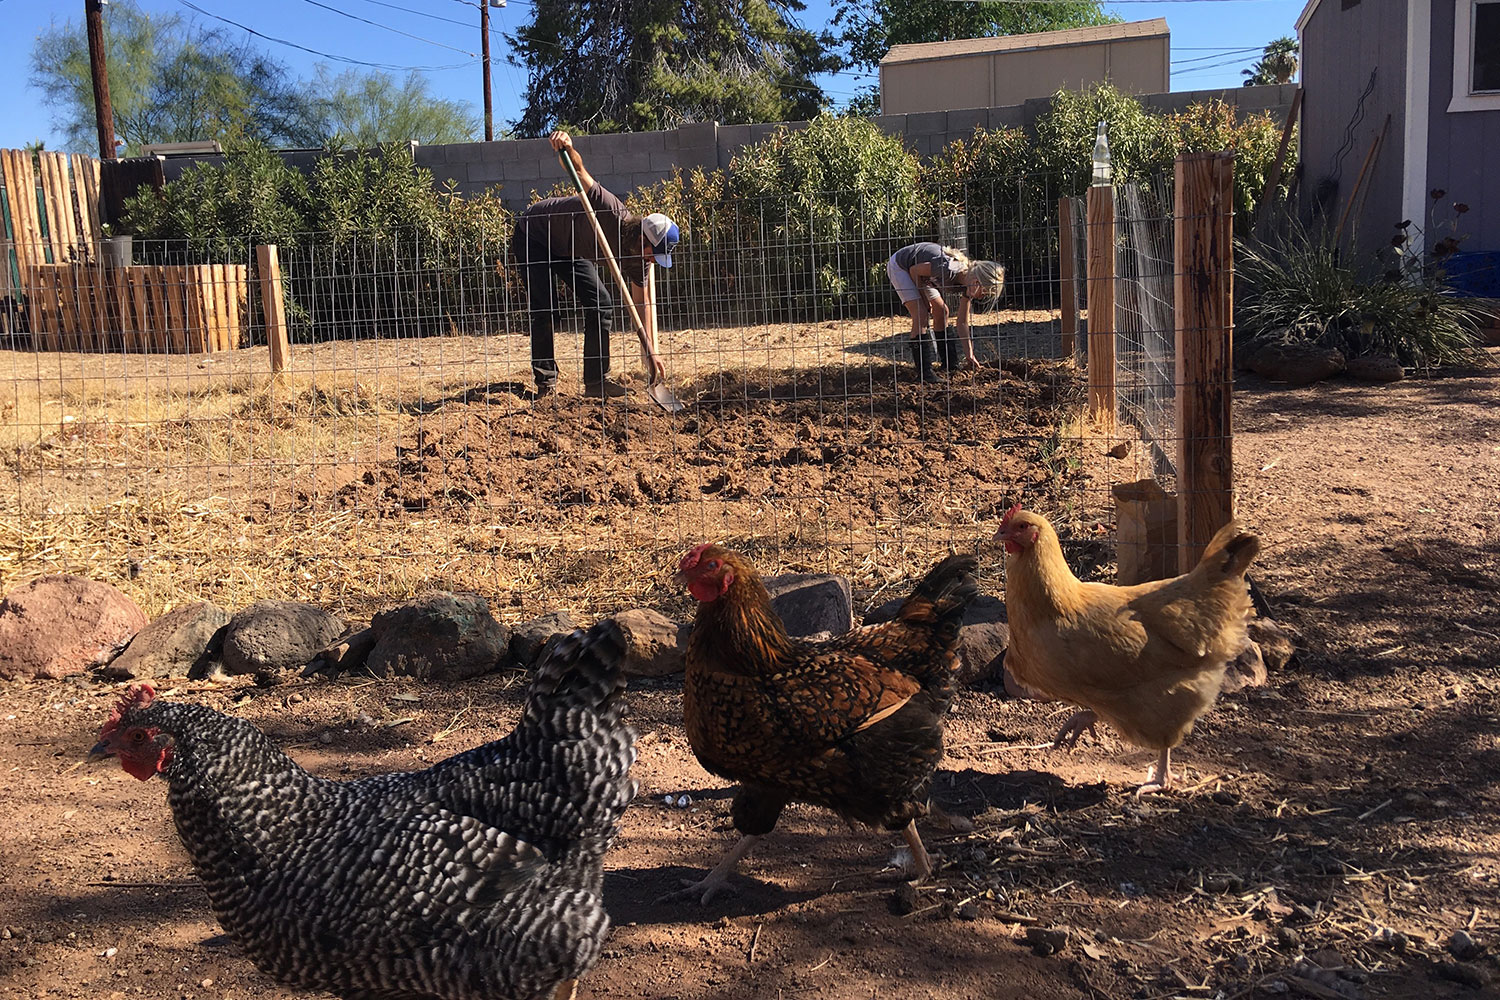 Pecks in the City: Is Urban Chicken Farming For You